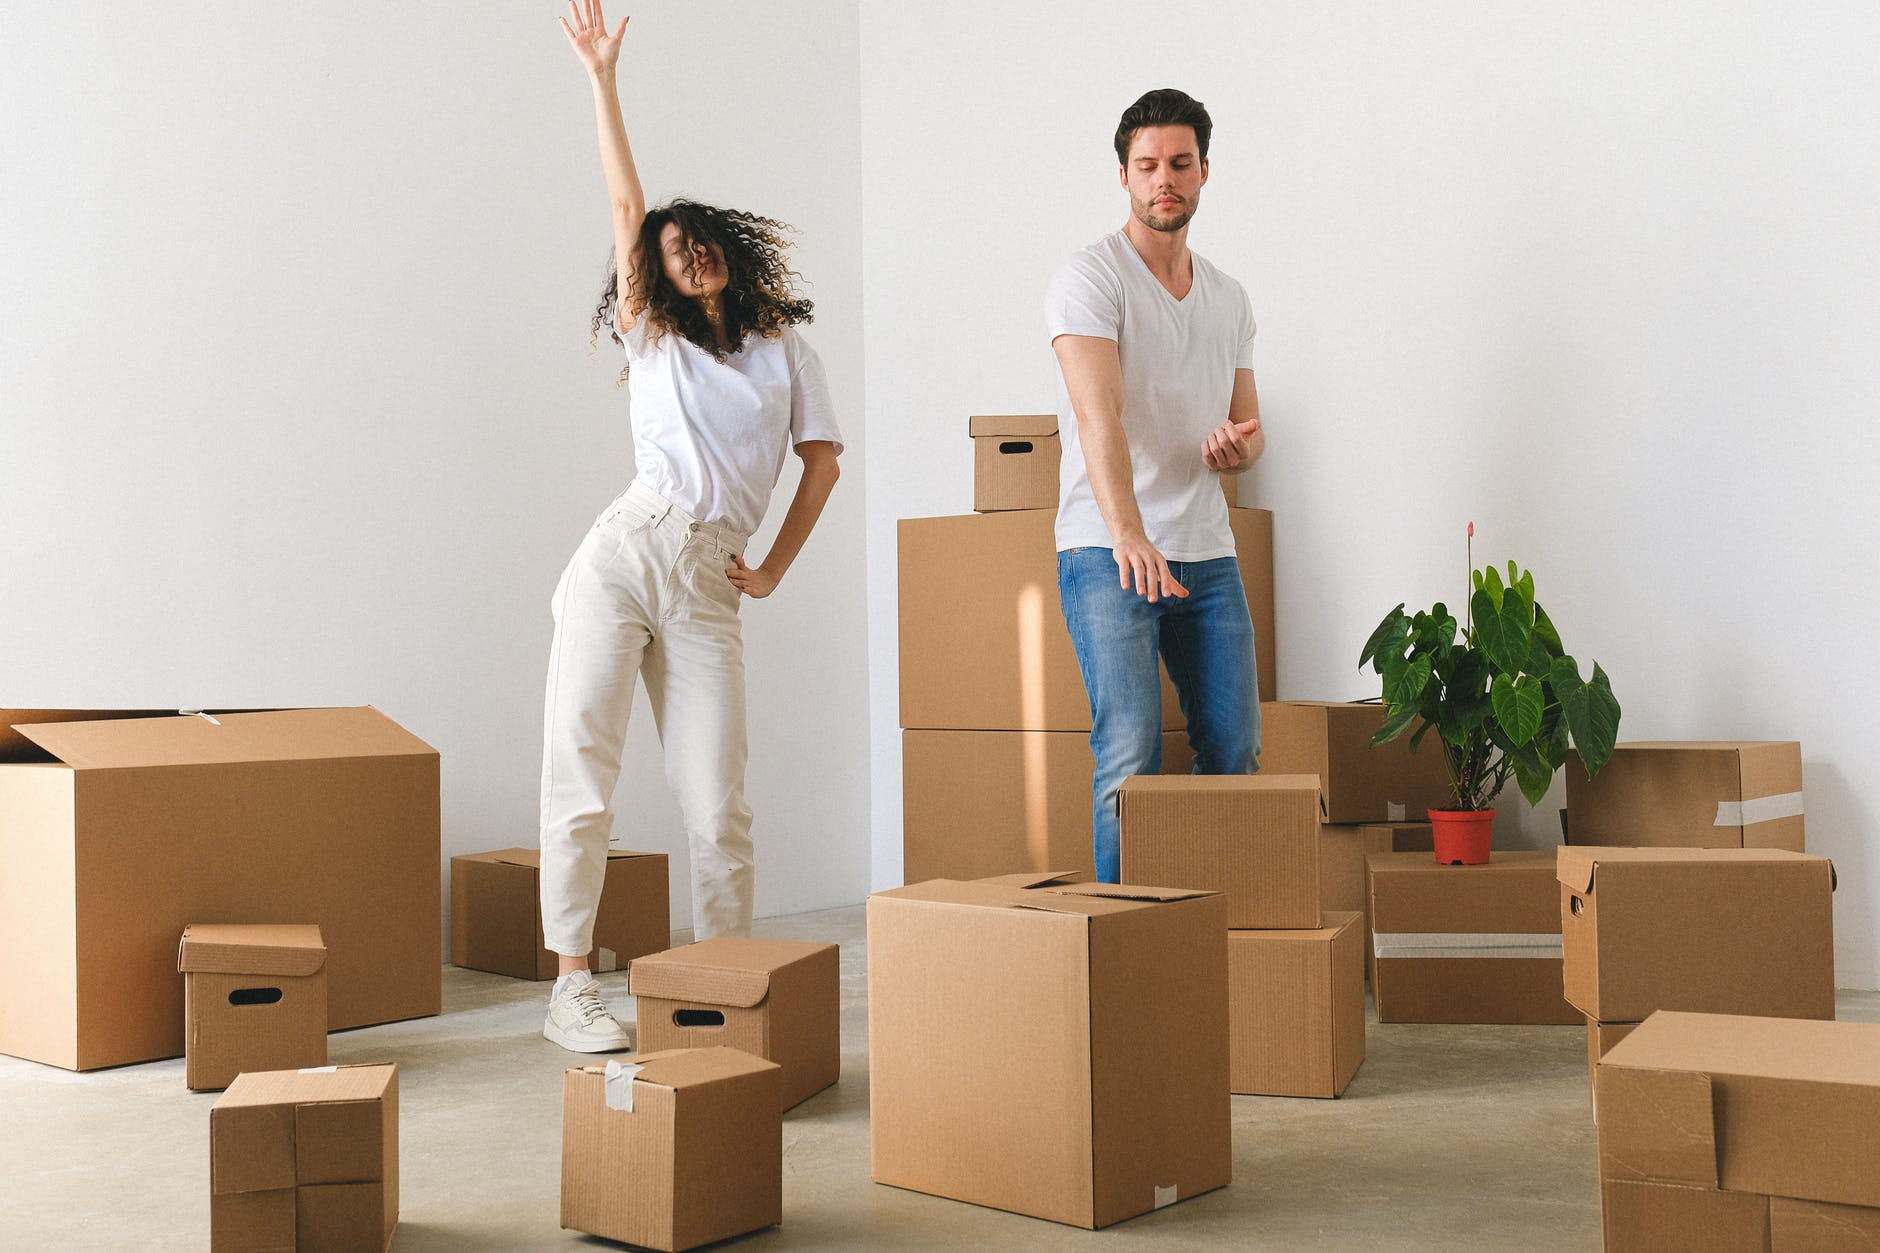 10 Things To Avoid When Relocating Your House